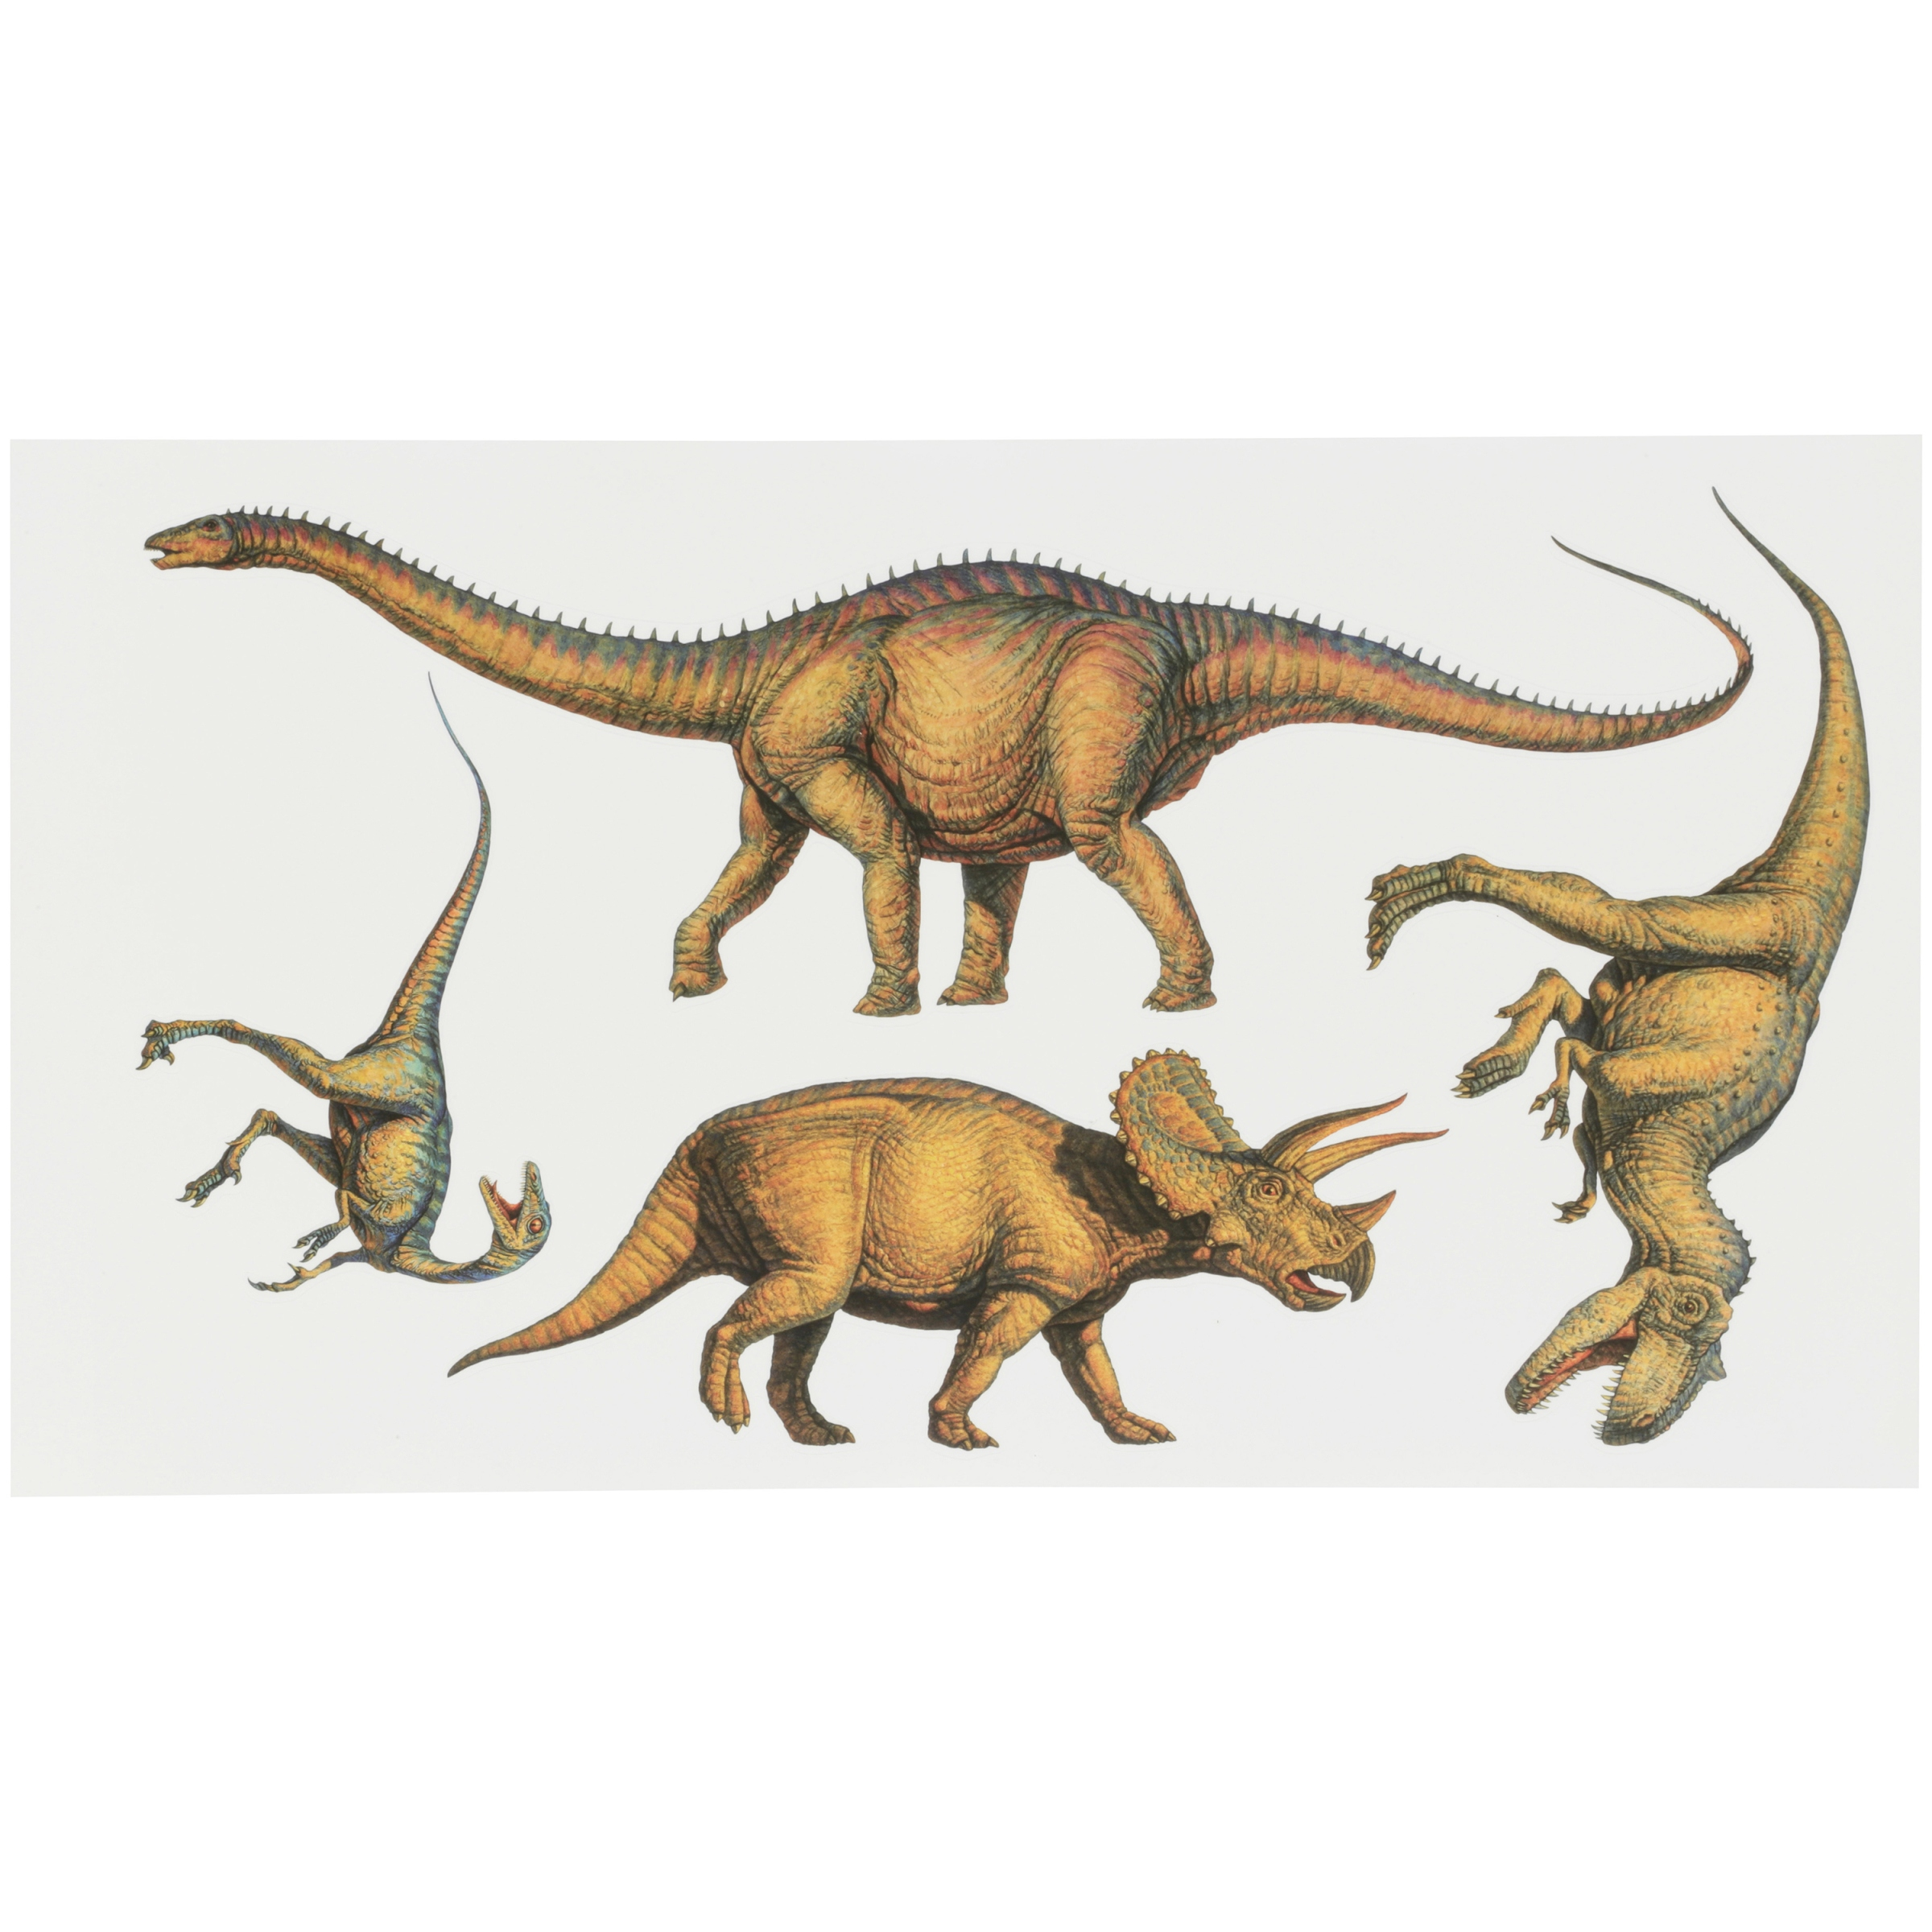 RoomMates® Dinosaurs Peel & Stick Wall Decals 16 ct Pack